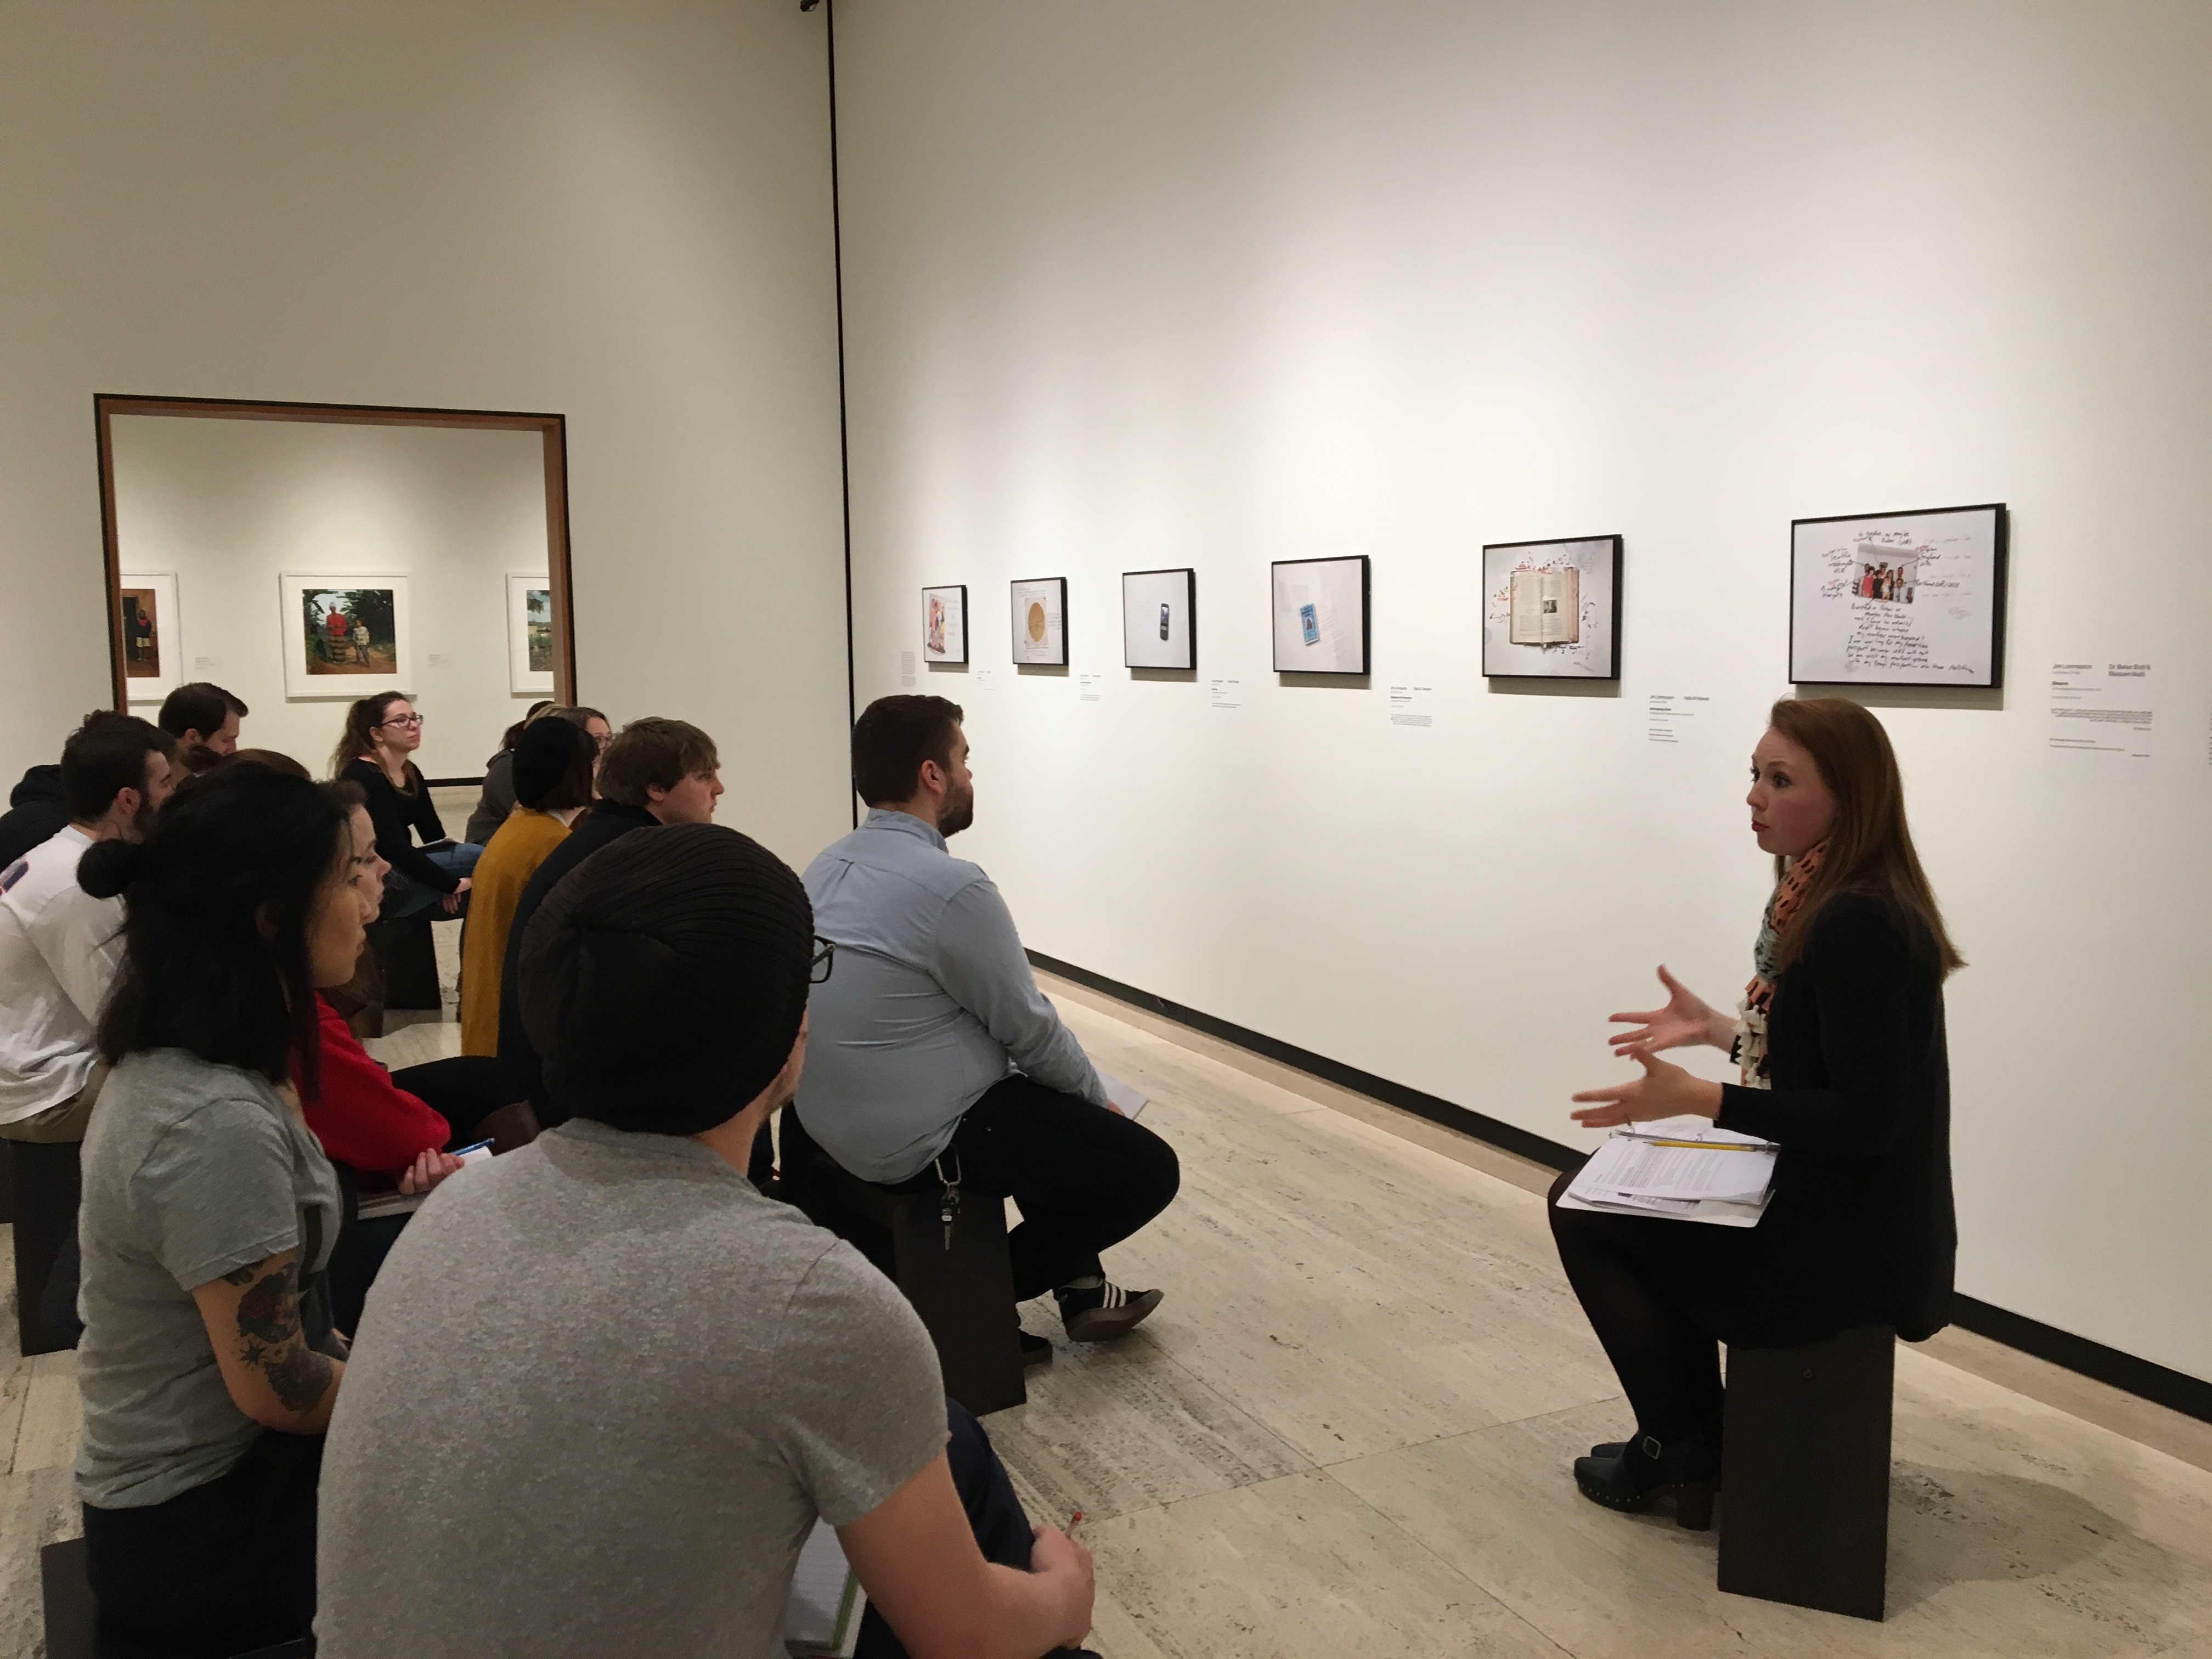 Students in the Nebraska Mosaic class listen as Abby Groth, assistant curator of public programs, (far right) discusses the nuances of Jim Lommasson's exhibit at the Sheldon Museum of Art. (Photo by Michelle Hassler)